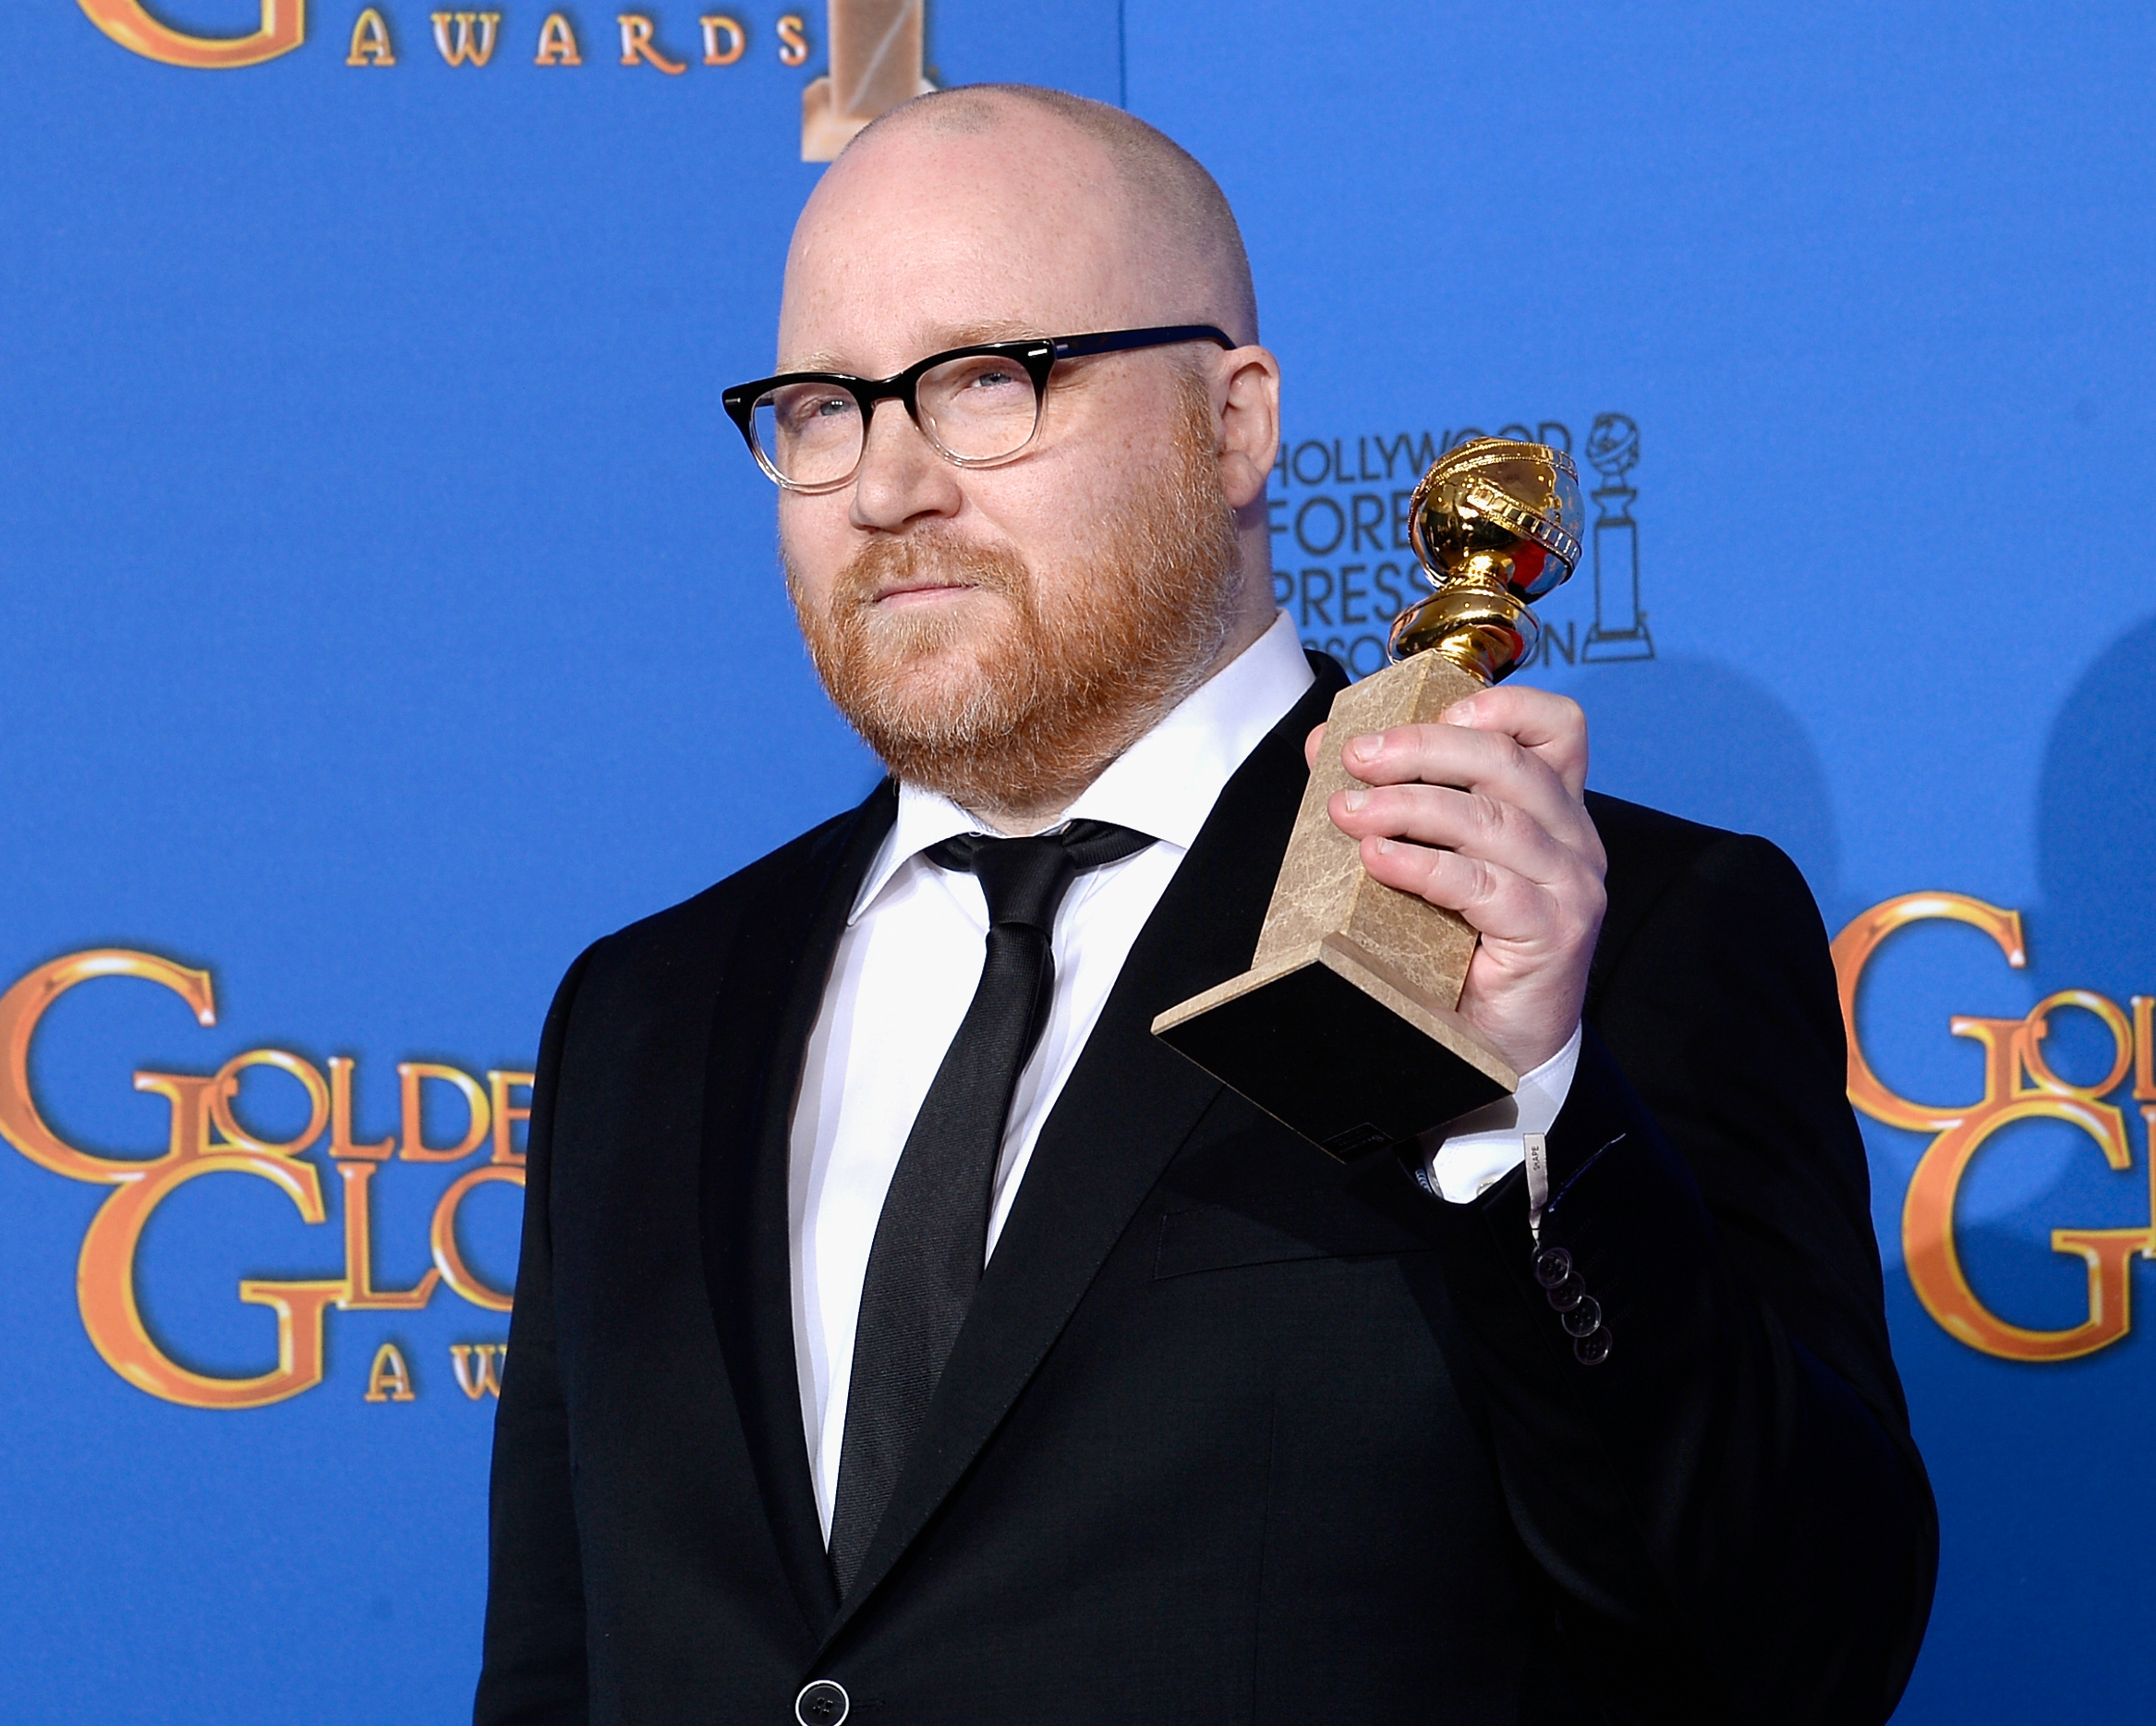 Composer Johann Johannsson, winner of Best Original Score for the Motion Picture 'The Theory of Everything', poses in the press room at the 72nd Annual Golden Globe Awards held at the Beverly Hilton Hotel on January 11, 2015.